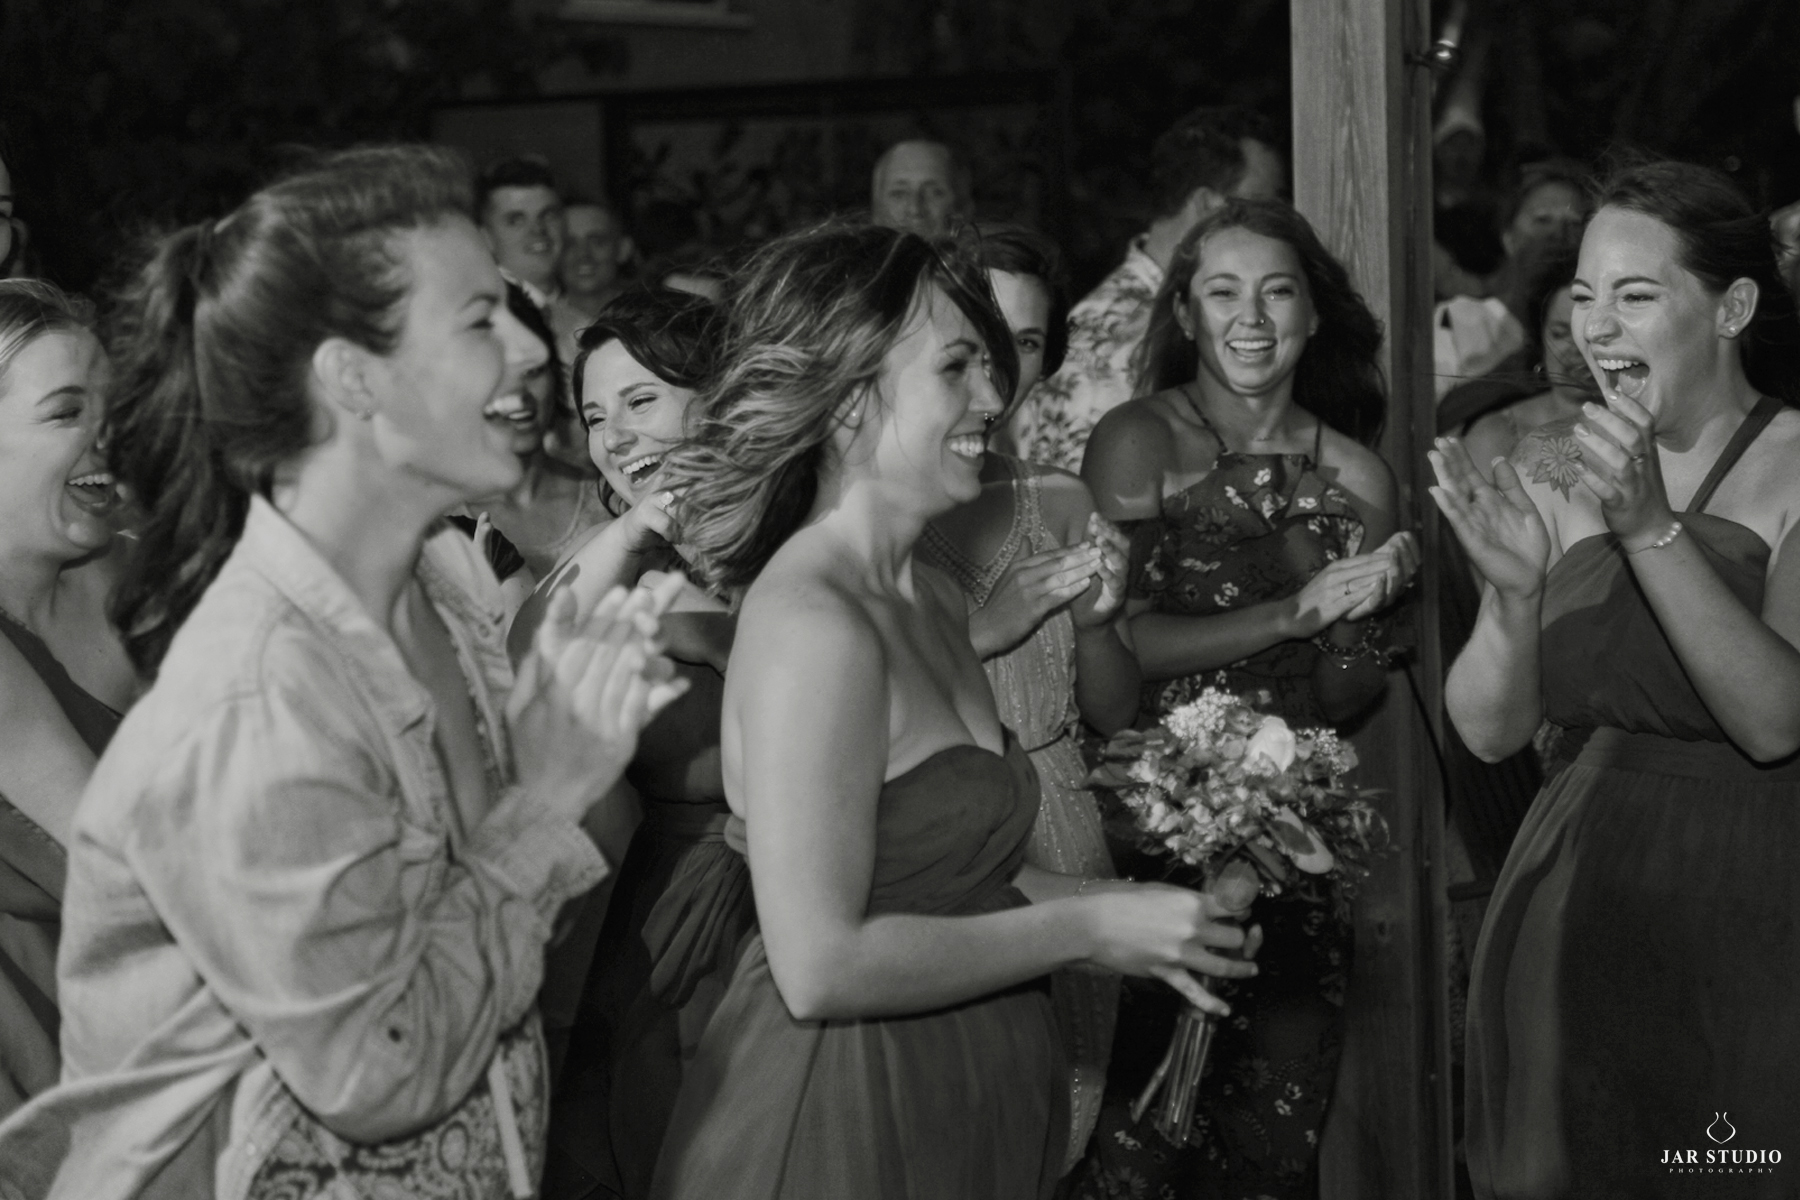 37-bridesmaid-reception-fun-photography-jarstudio.JPG